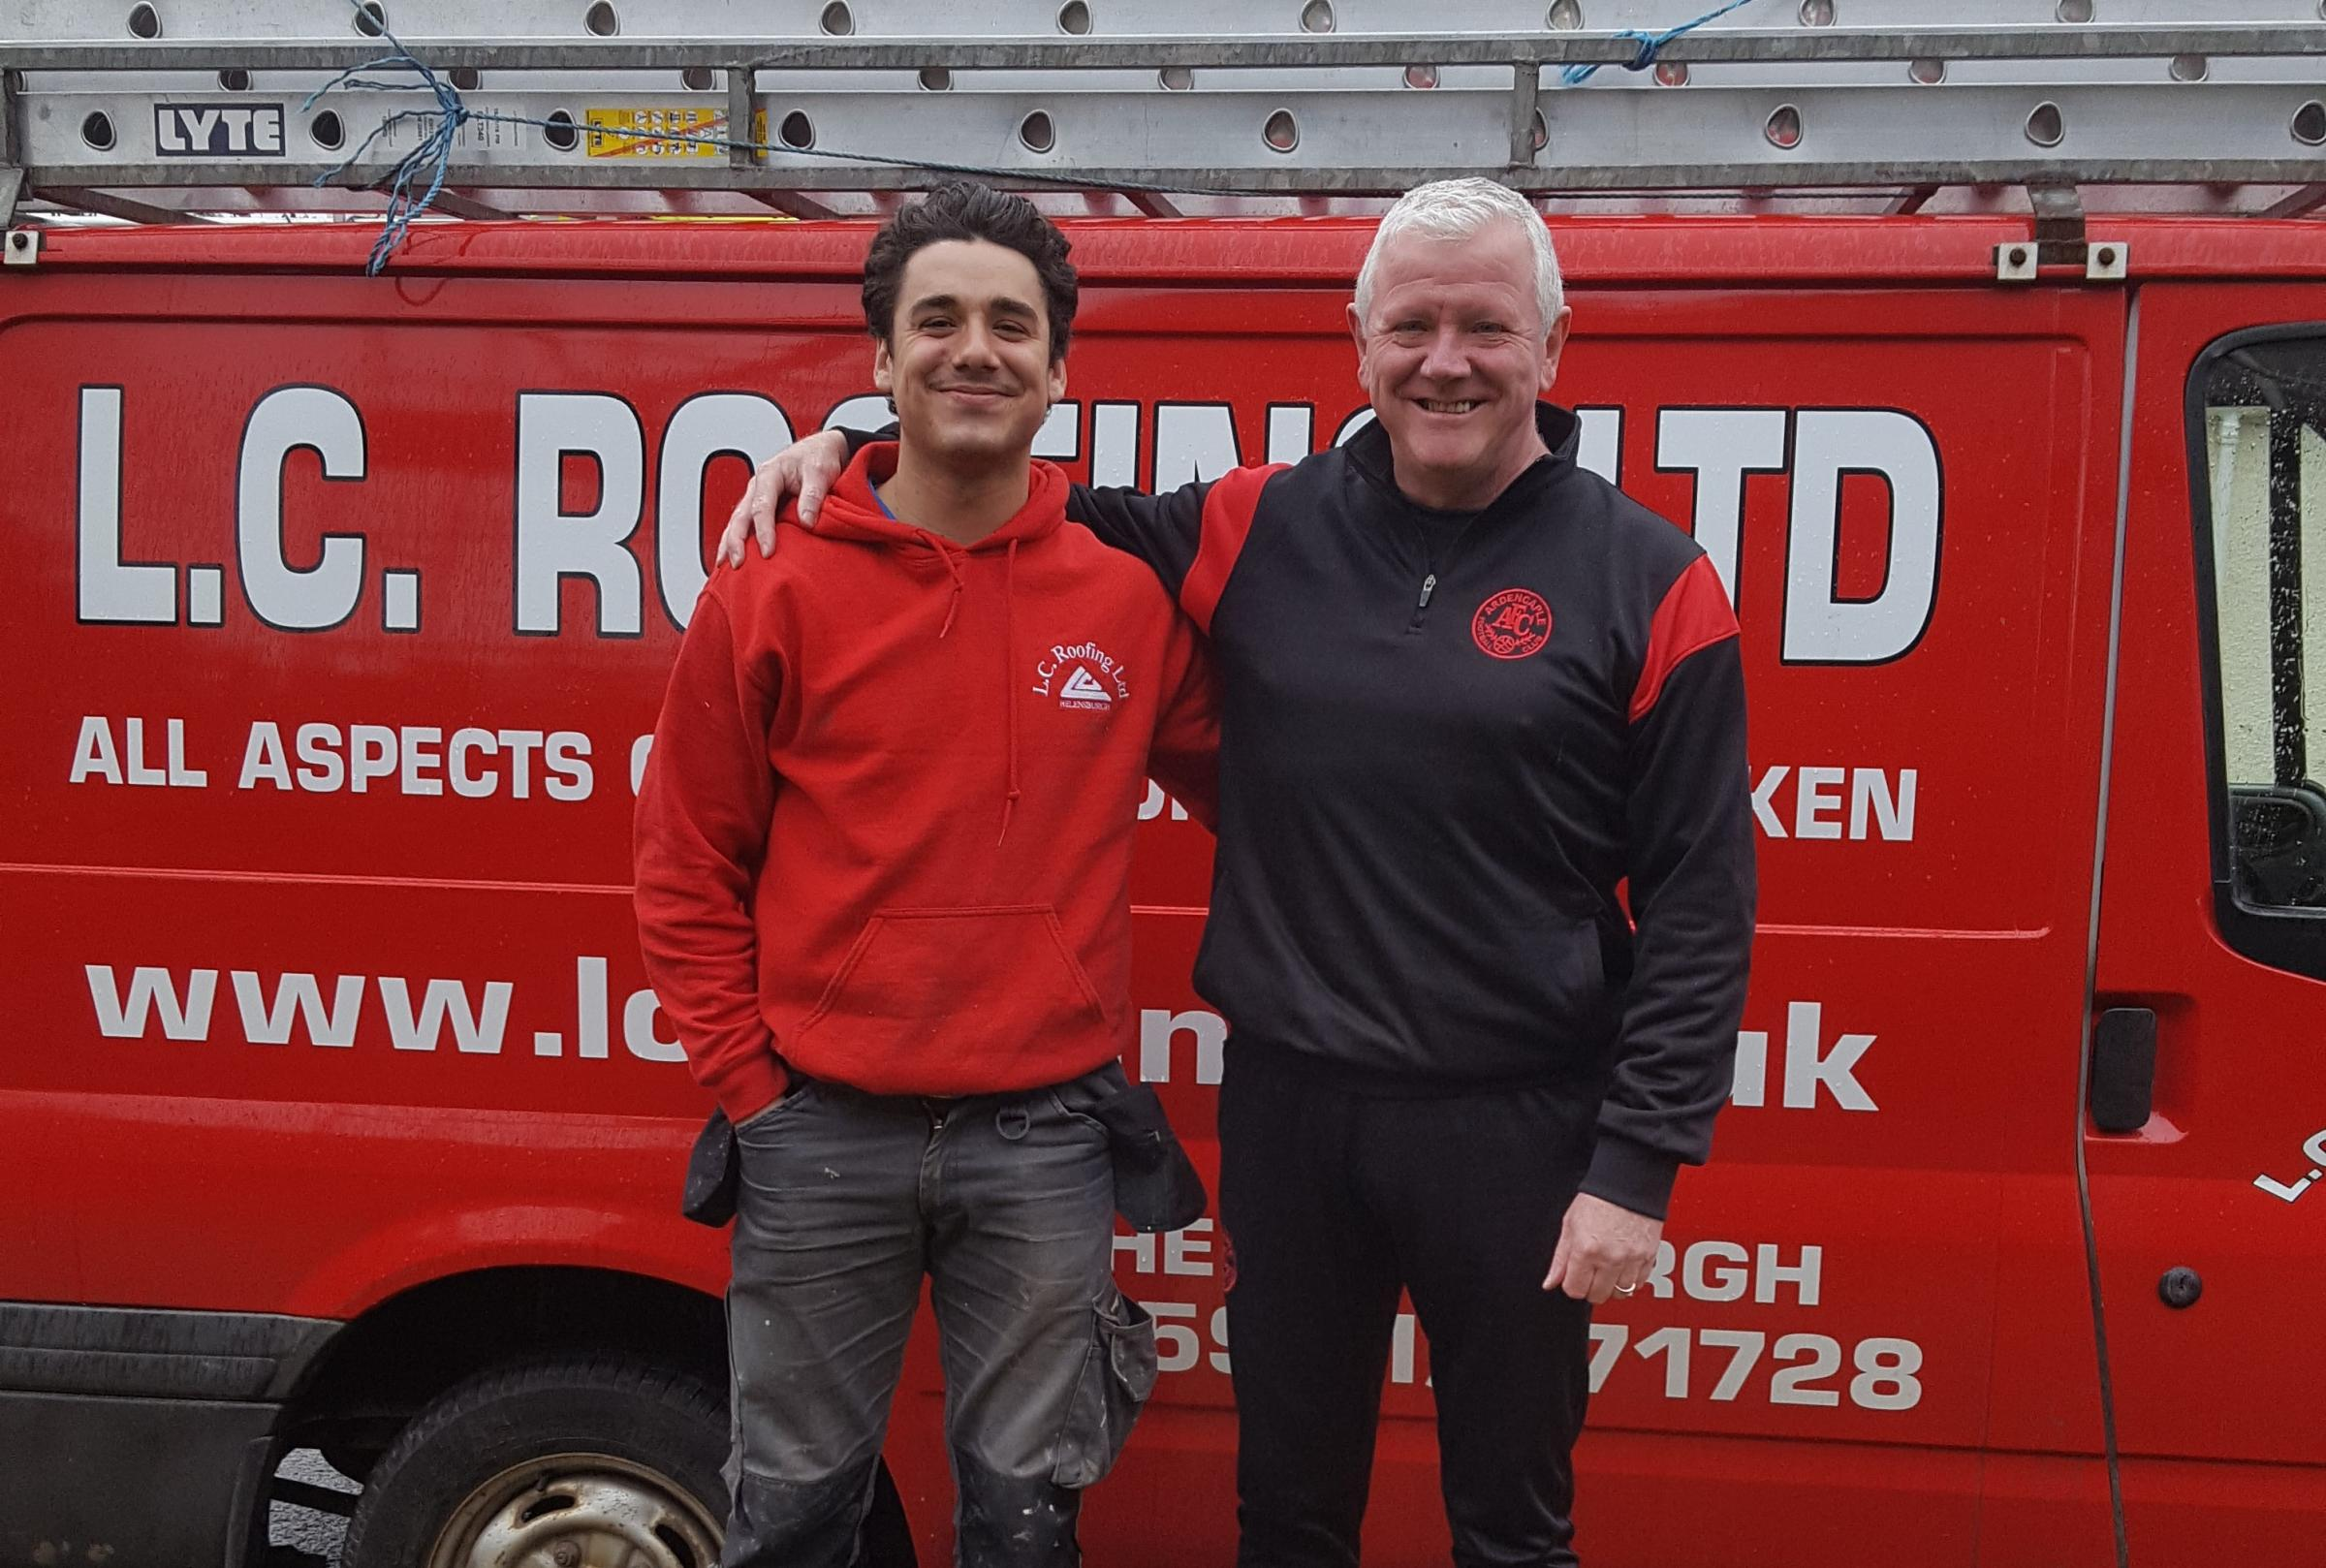 Ardencaple FC's new men's amateur team is being set up with financial backing from the club's long-term supporter, LC Roofing. Pictured are LC Roofing's Mikey Hopkins, currently playing for Albion Rovers, and Caple chairman Craig Holborn